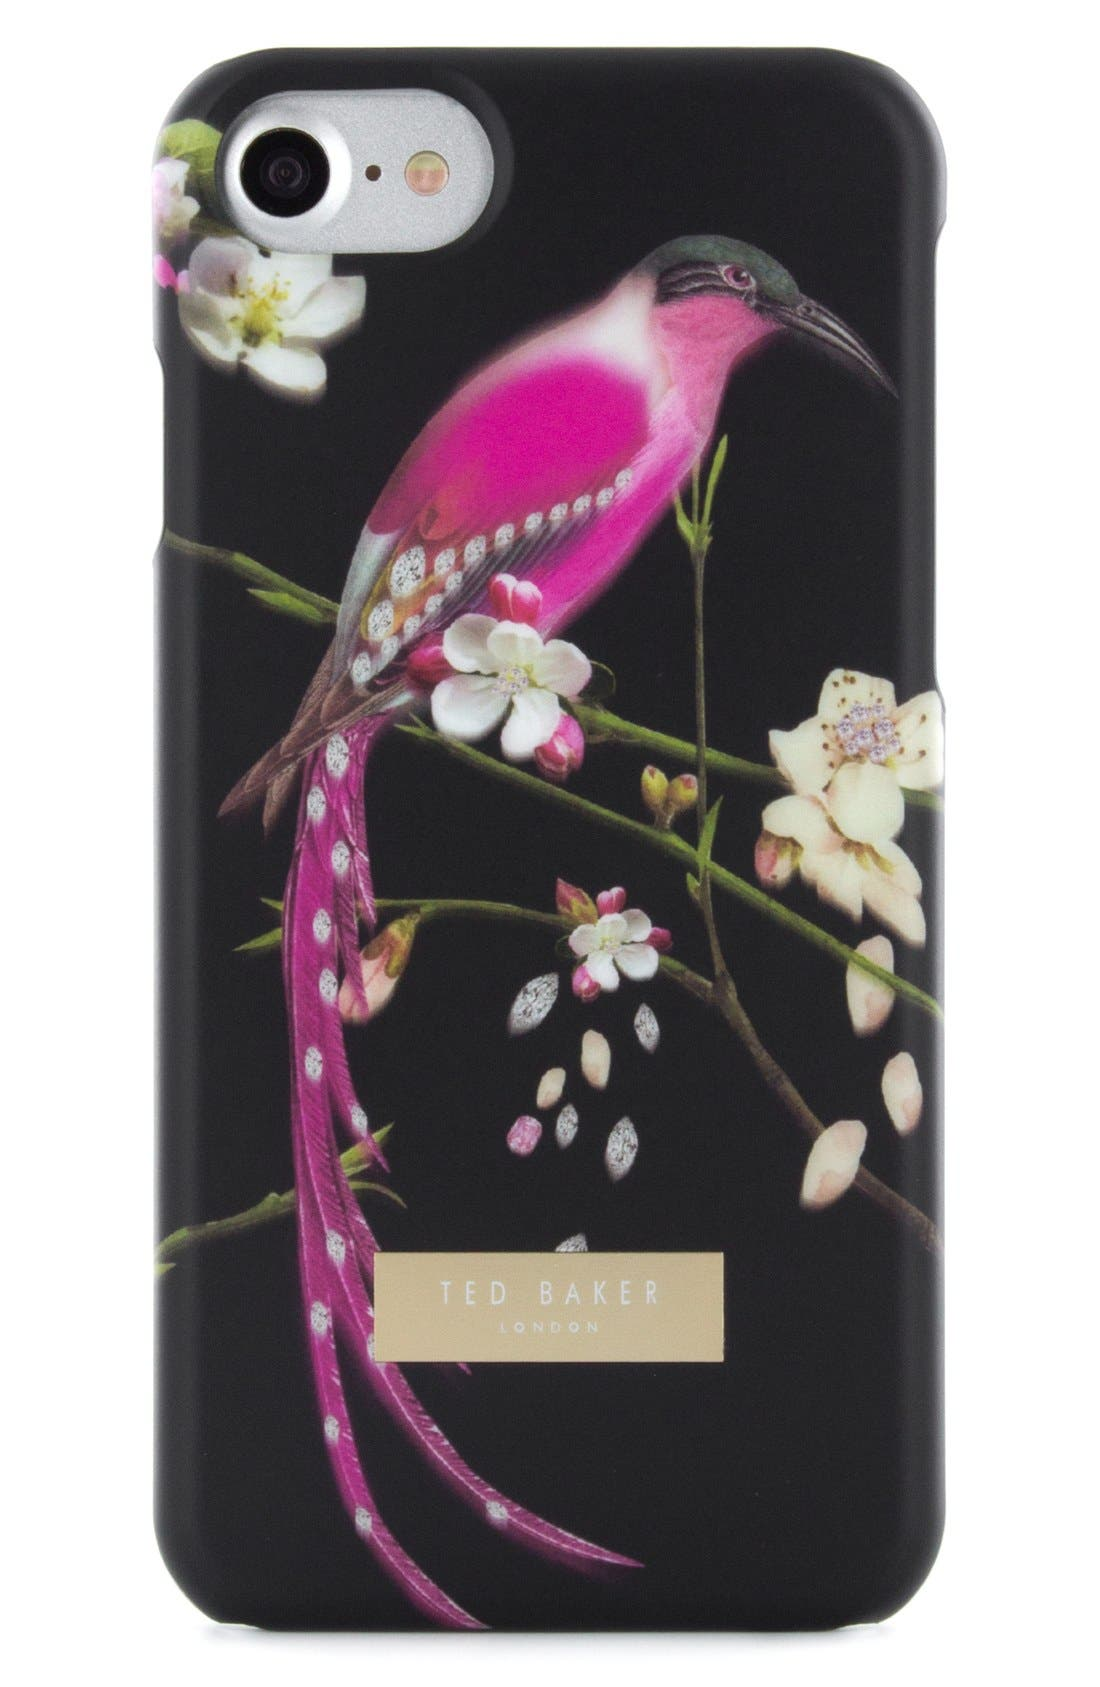 Main Image - Ted Baker London Mireill iPhone 6/6s/7/8 Case